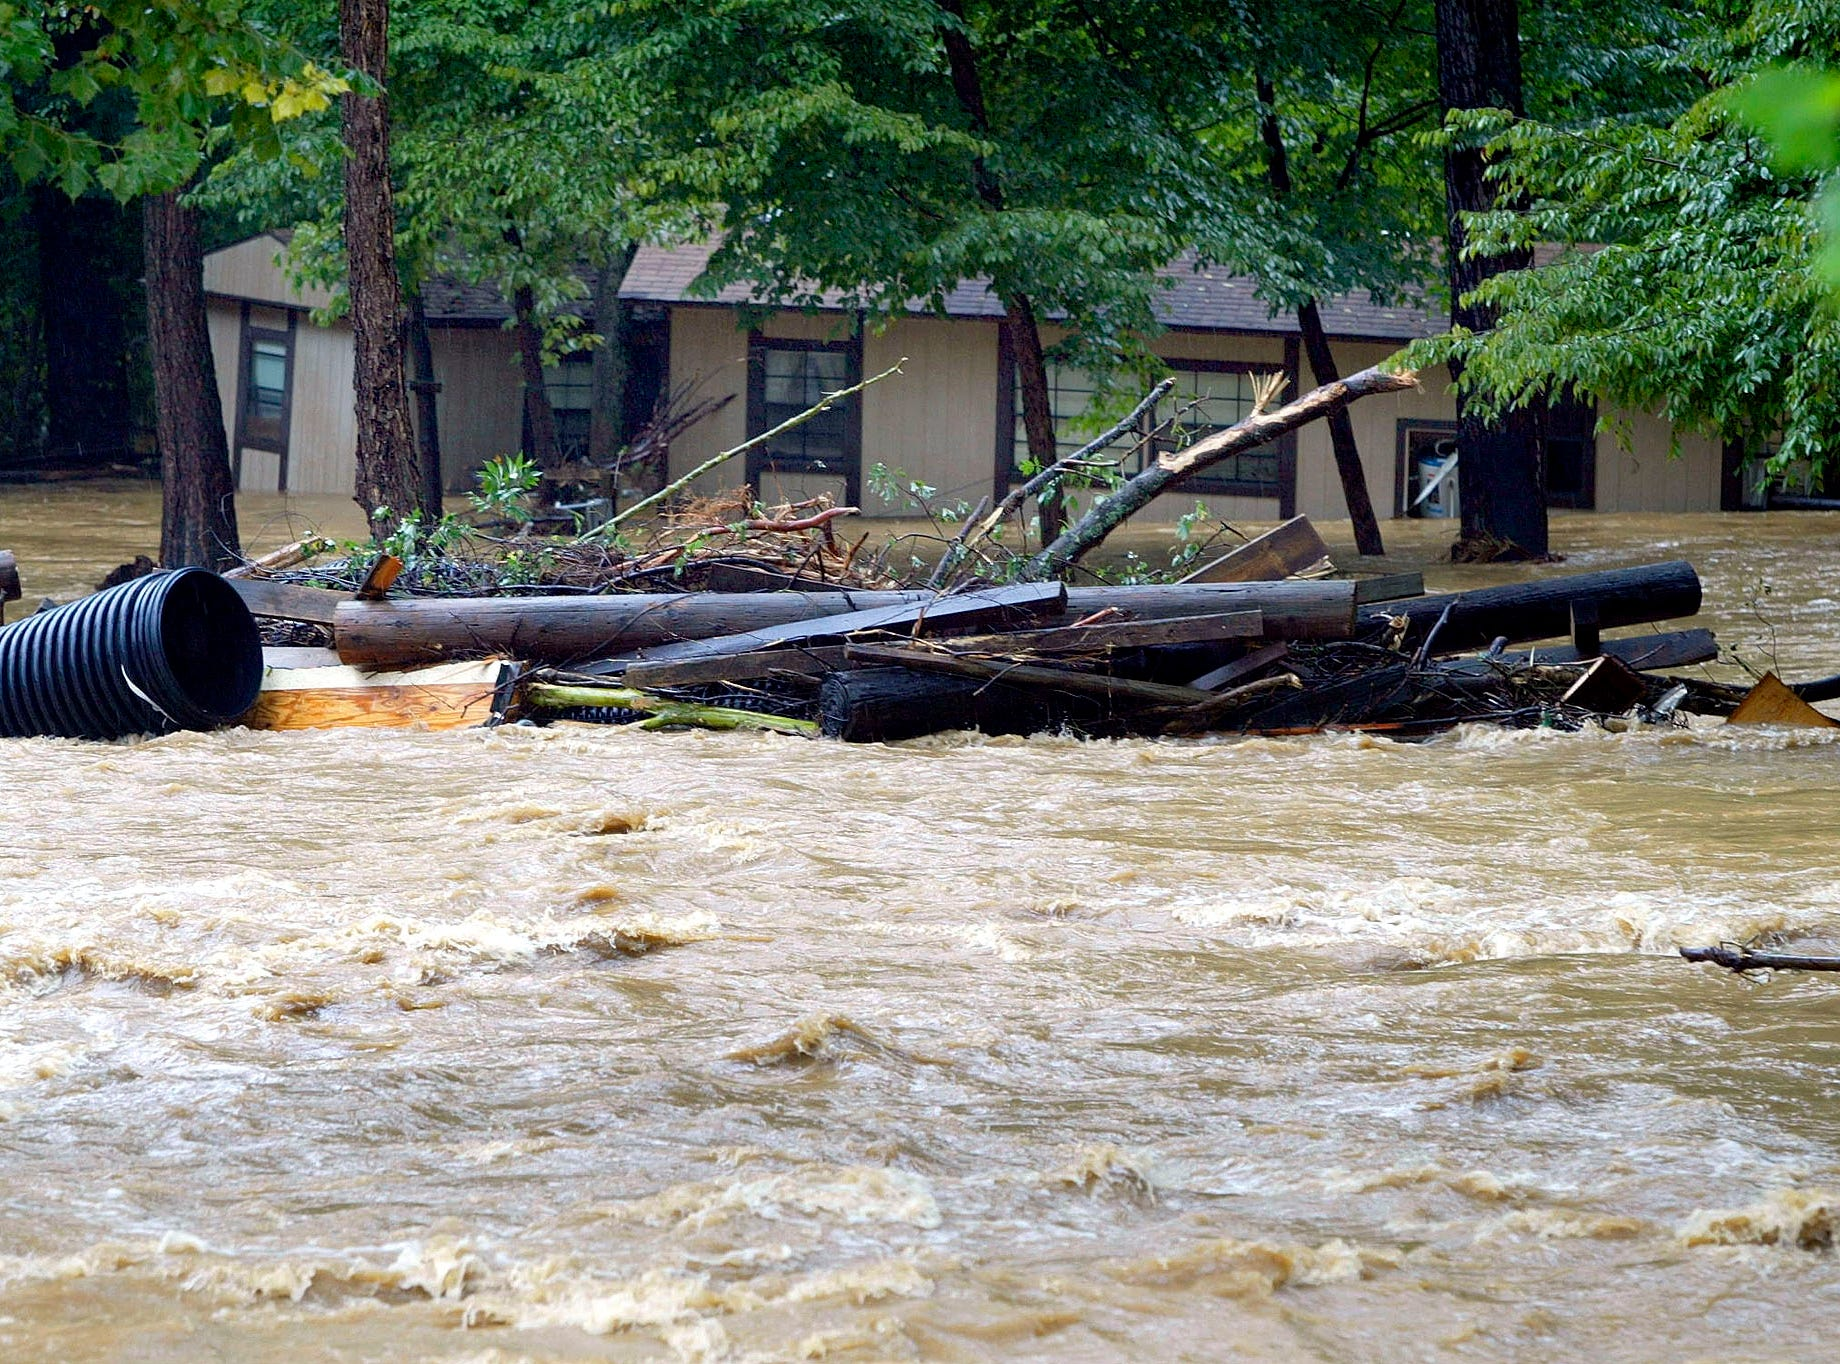 Debris piles up as floodwaters from the Swannanoa River flow past a mobile home in Swannanoa on Sept. 8, 2004. Heavy rains from the remnants of Hurricane Frances caused flooding in the area.